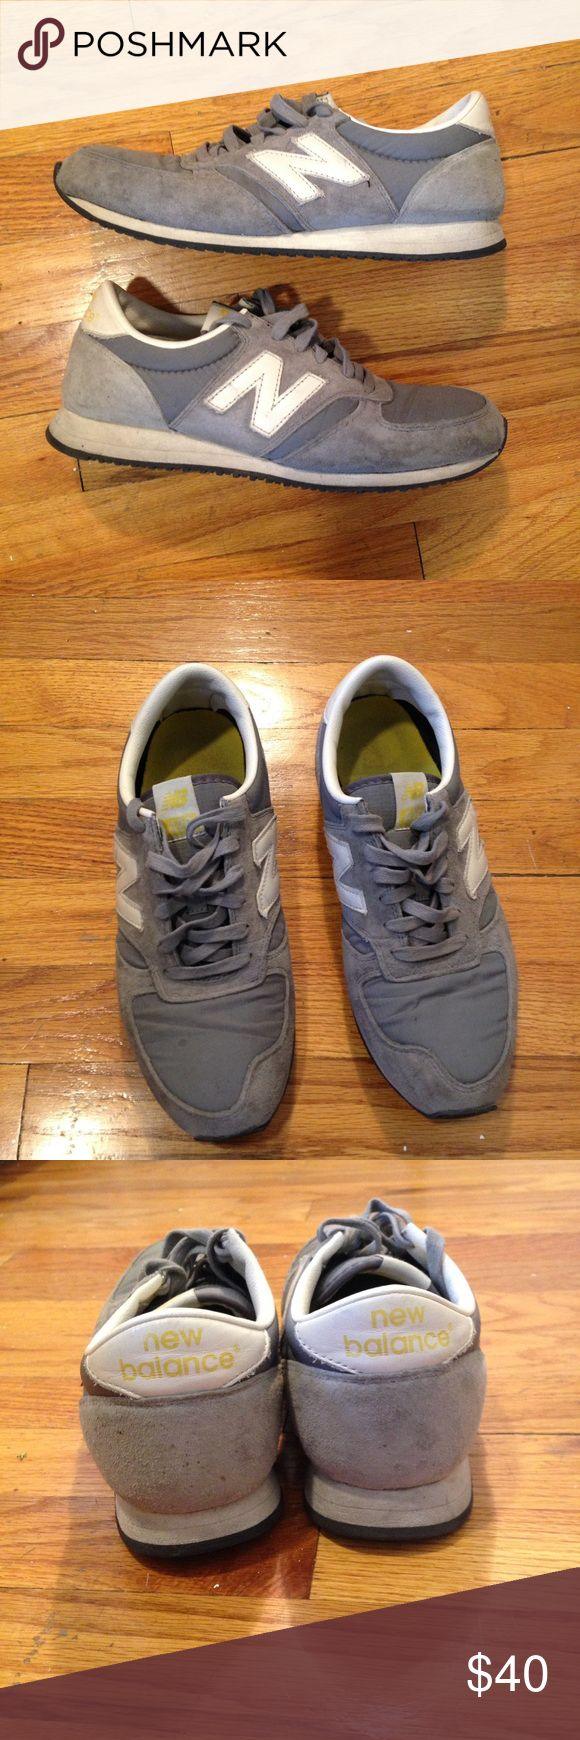 New Balance Sneakers New Balance U420UKG grey/white sneakers with yellow details. Fits a women's 8.5-9. (They're a men's size 8, but I think they run small). Worn, but in good shape! New Balance Shoes Sneakers